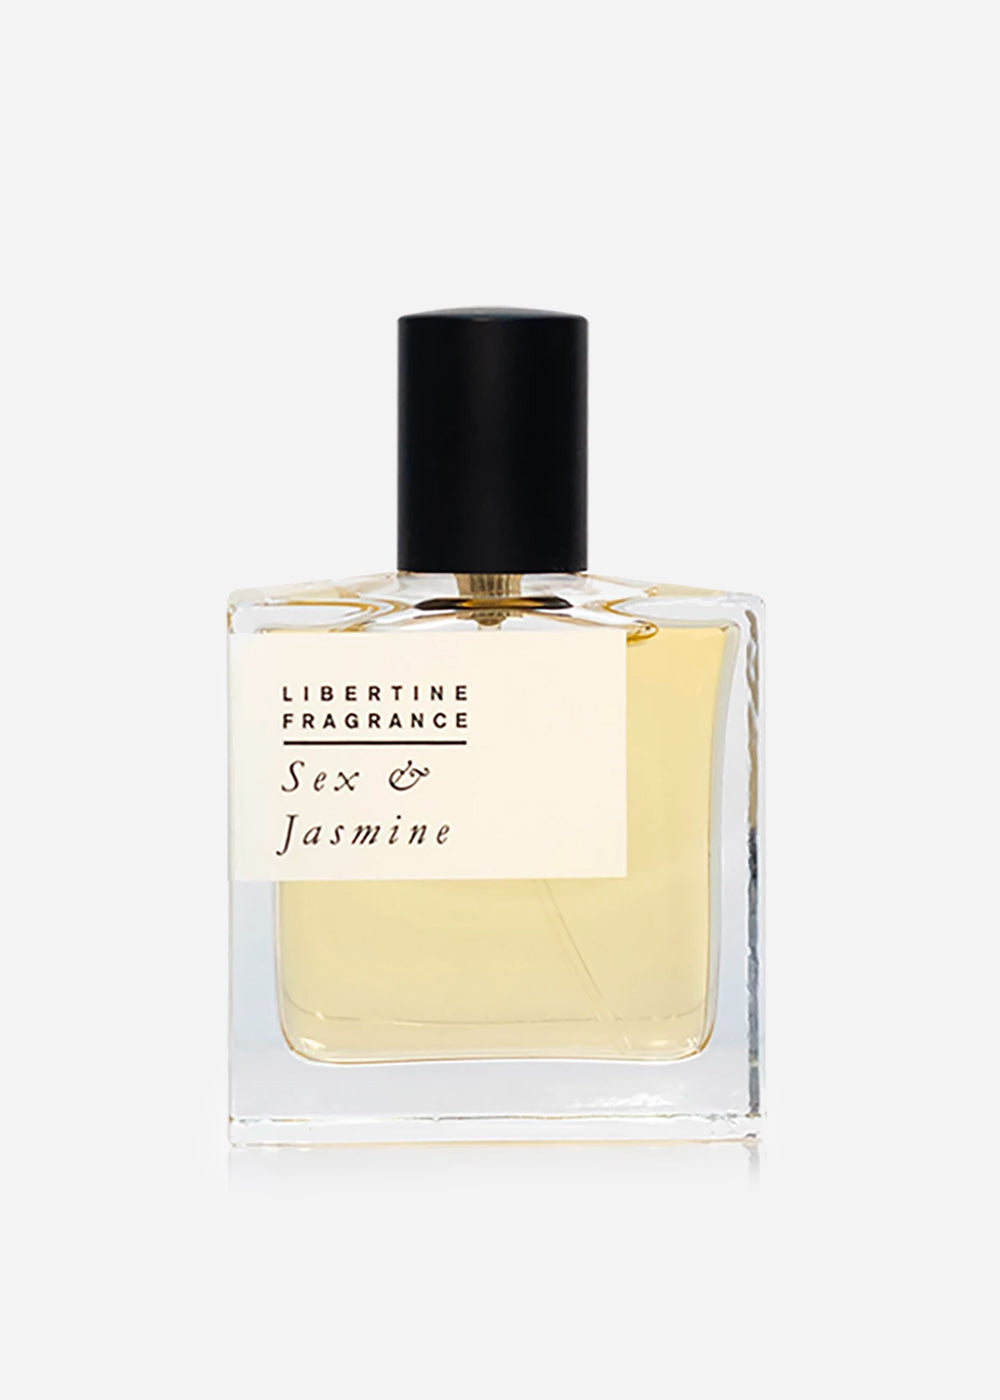 Libertine Fragrance Sex & Jasmine Eau De Parfum — Shop sustainable fashion and slow fashion at New Classics Studios